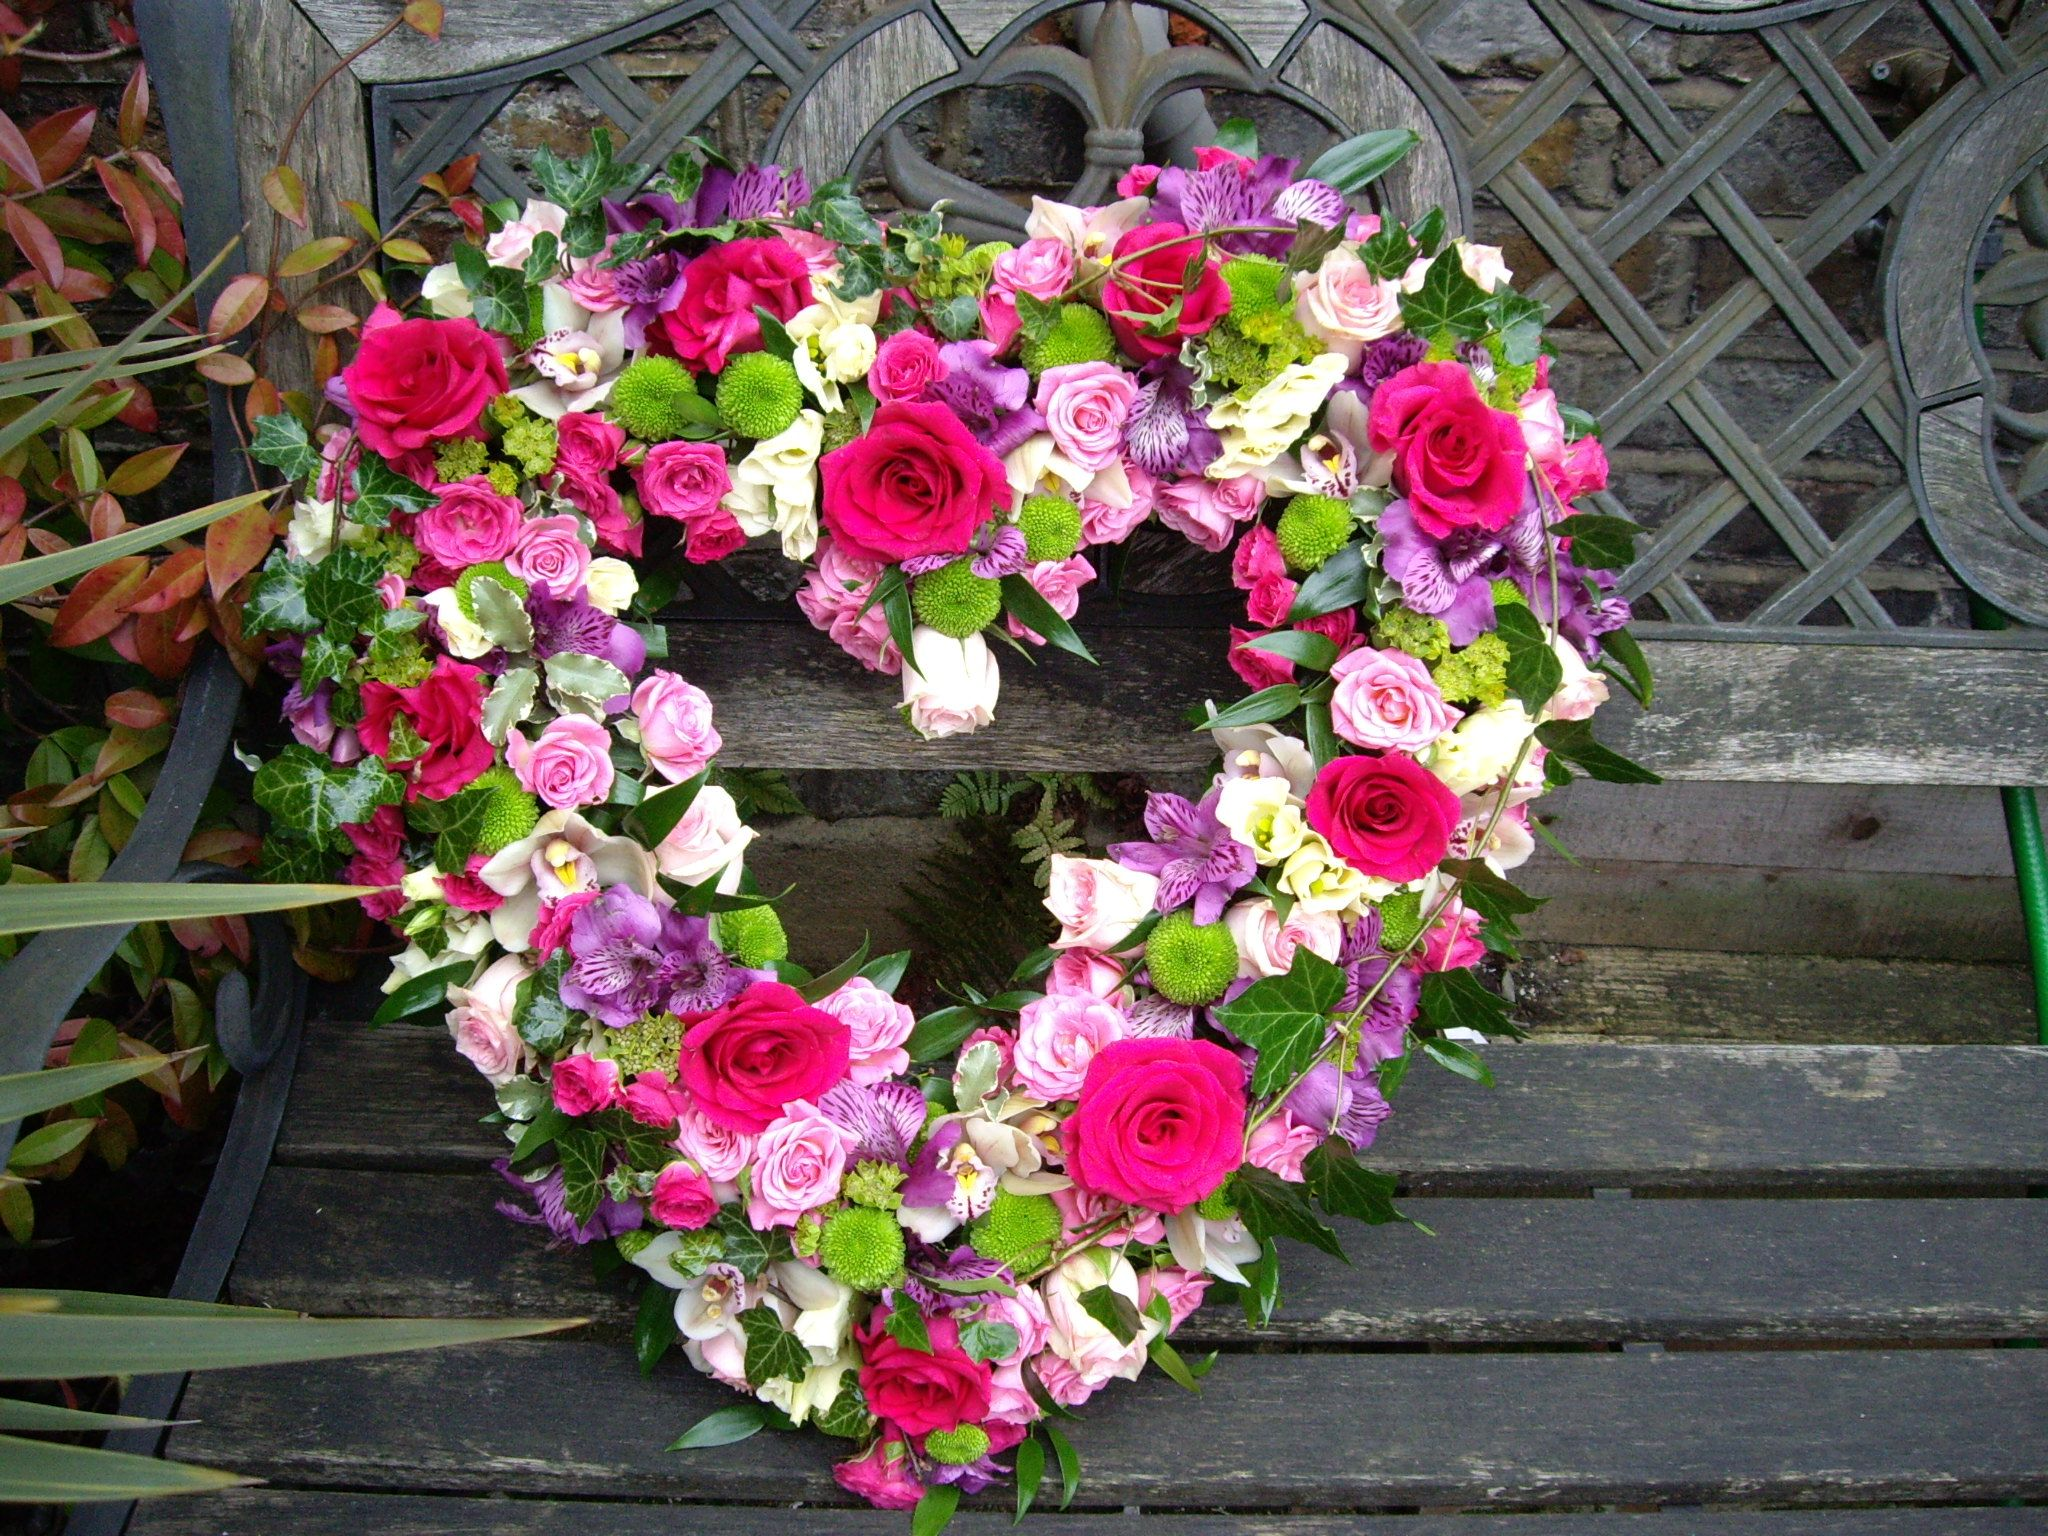 Loose heart full of summer flowers sympathy flowers pinterest west london flowers specialise in stunning wedding flowers bespoke funeral flowers and flowers for any occasion with over 20 years experience izmirmasajfo Images